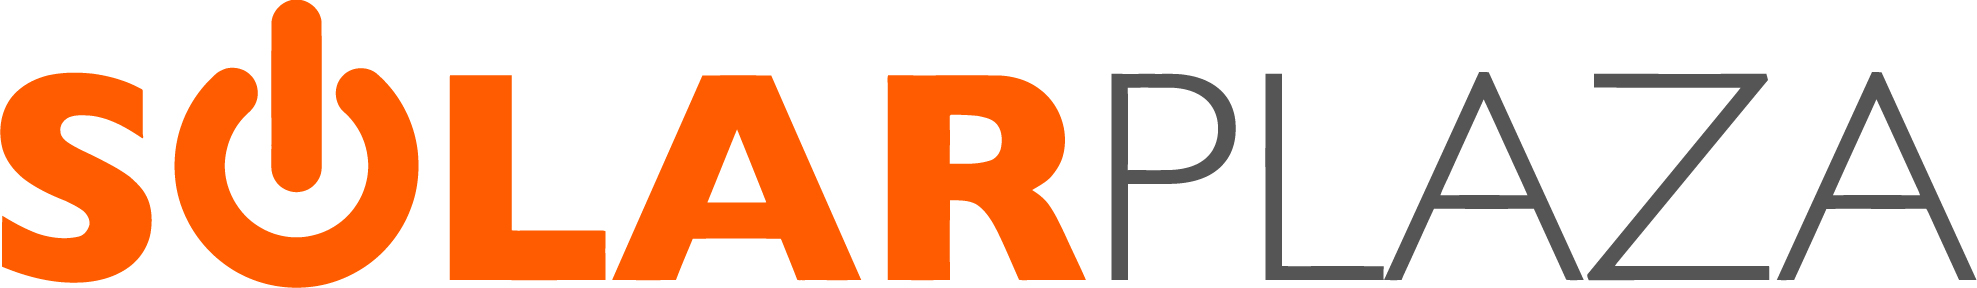 Solarplaza Logo (orange-grey-no-slogan) (JPG).jpg